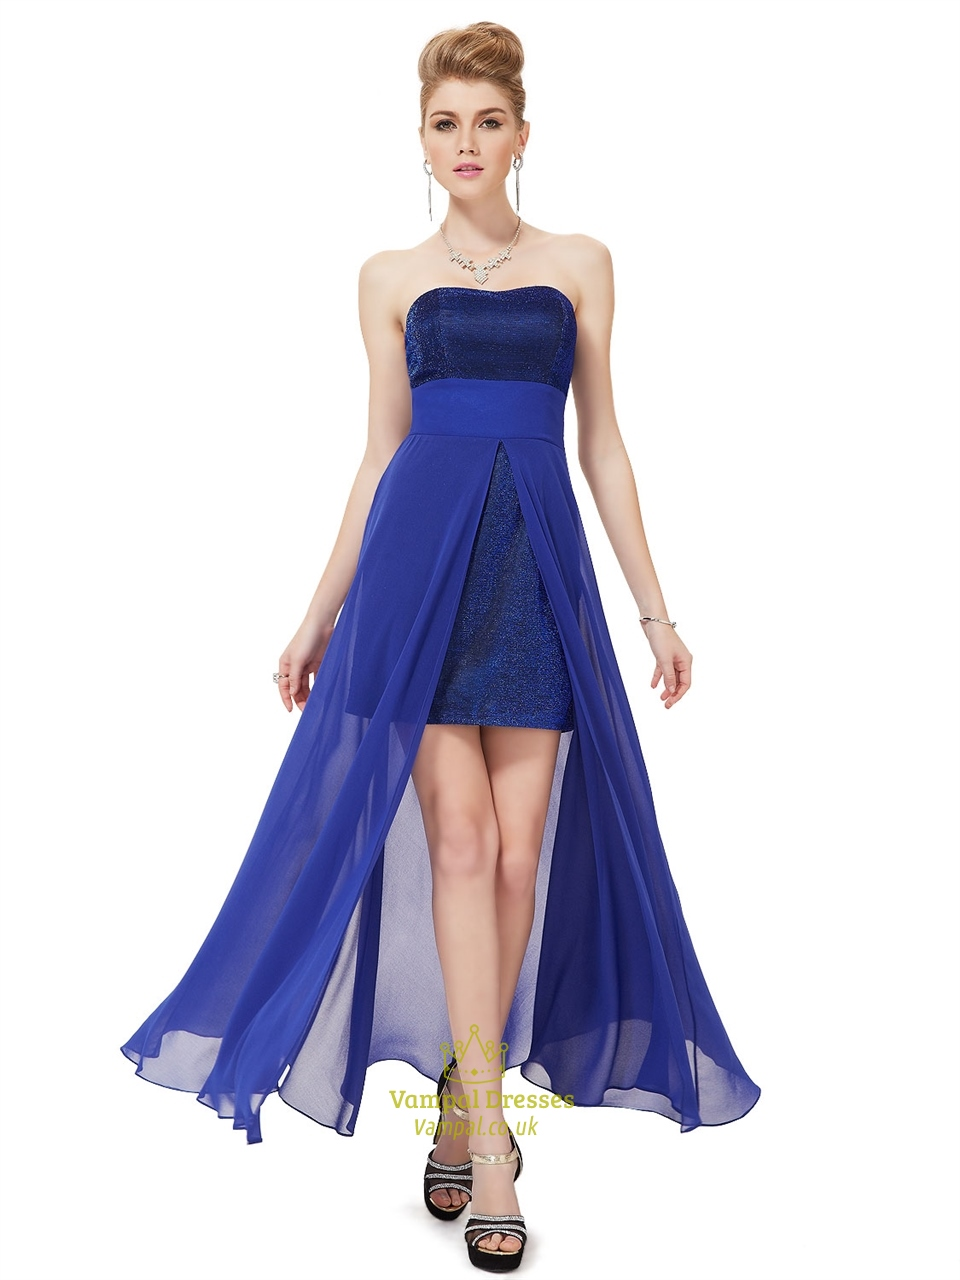 Blue Short Sequin Evening Dresses With Sheer Overlay,Short Blue ...